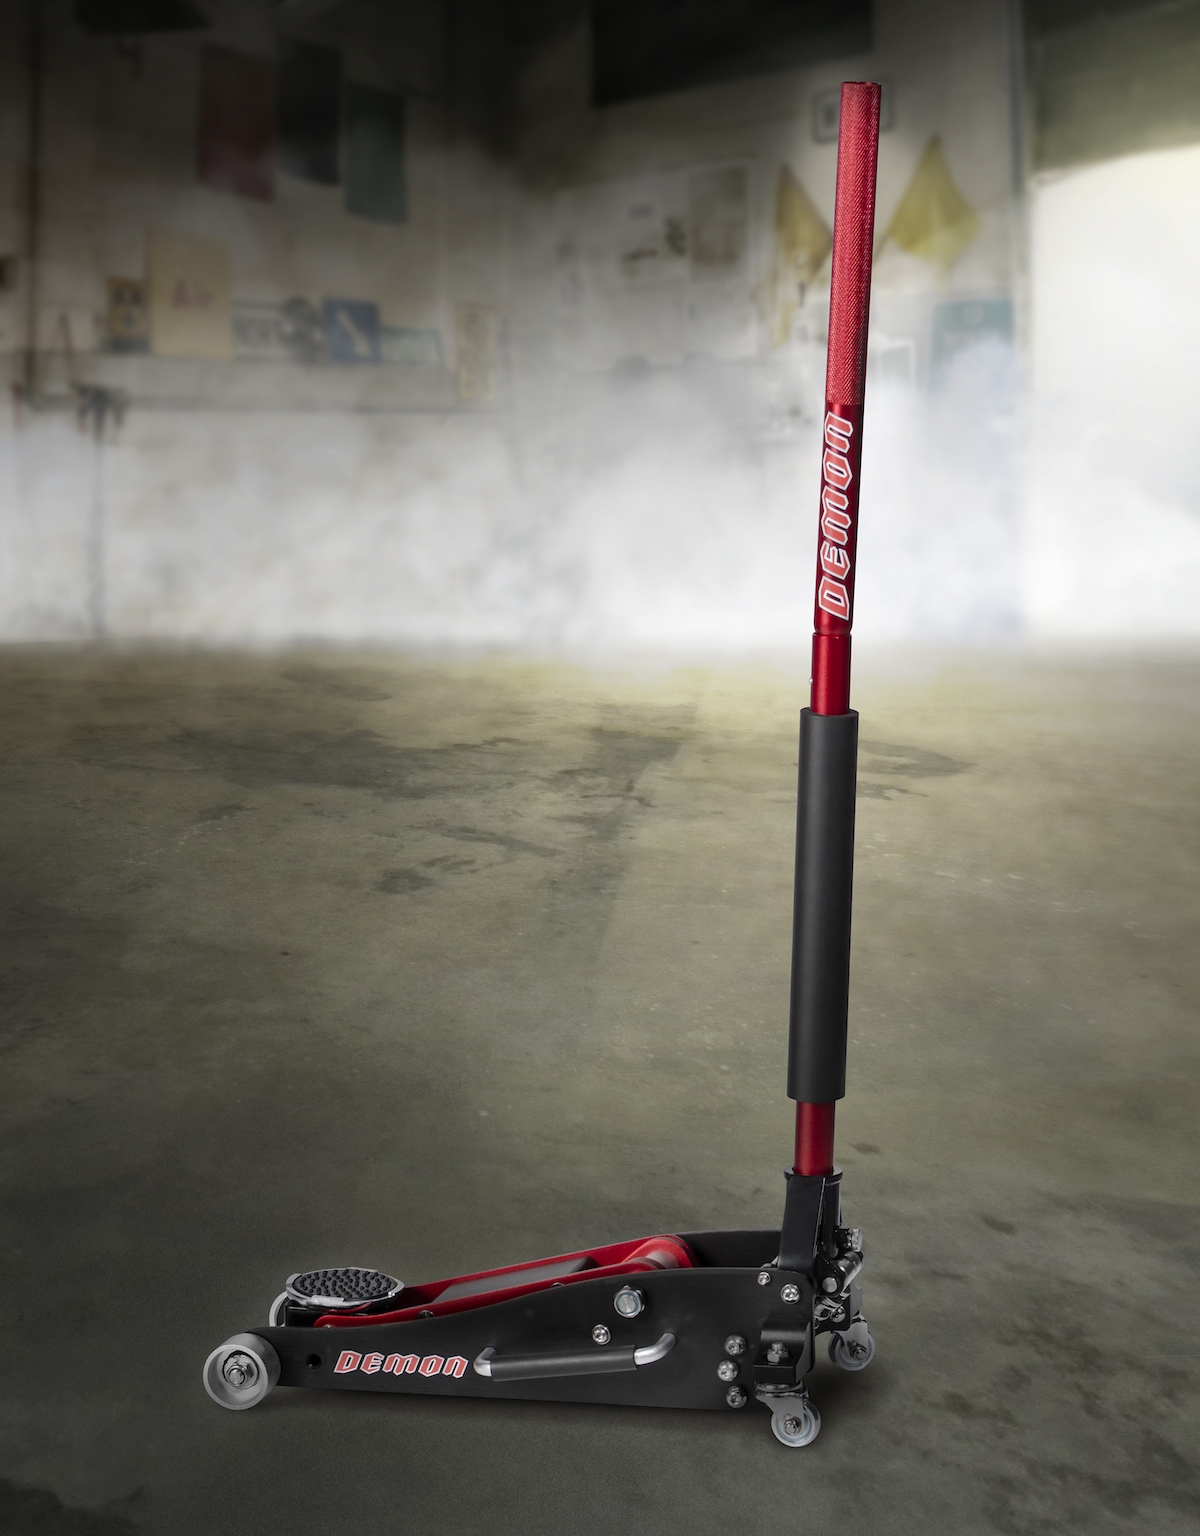 In collaboration with Dodge, Snap-on Business Solutions delivers what customers need to take the 2018 Dodge Challenger SRT Demon from the street to the drag strip and back again. This special, limited-production set of tools for the Dodge Challenger SRT Demon features several parts, including this hydraulic floor jack.